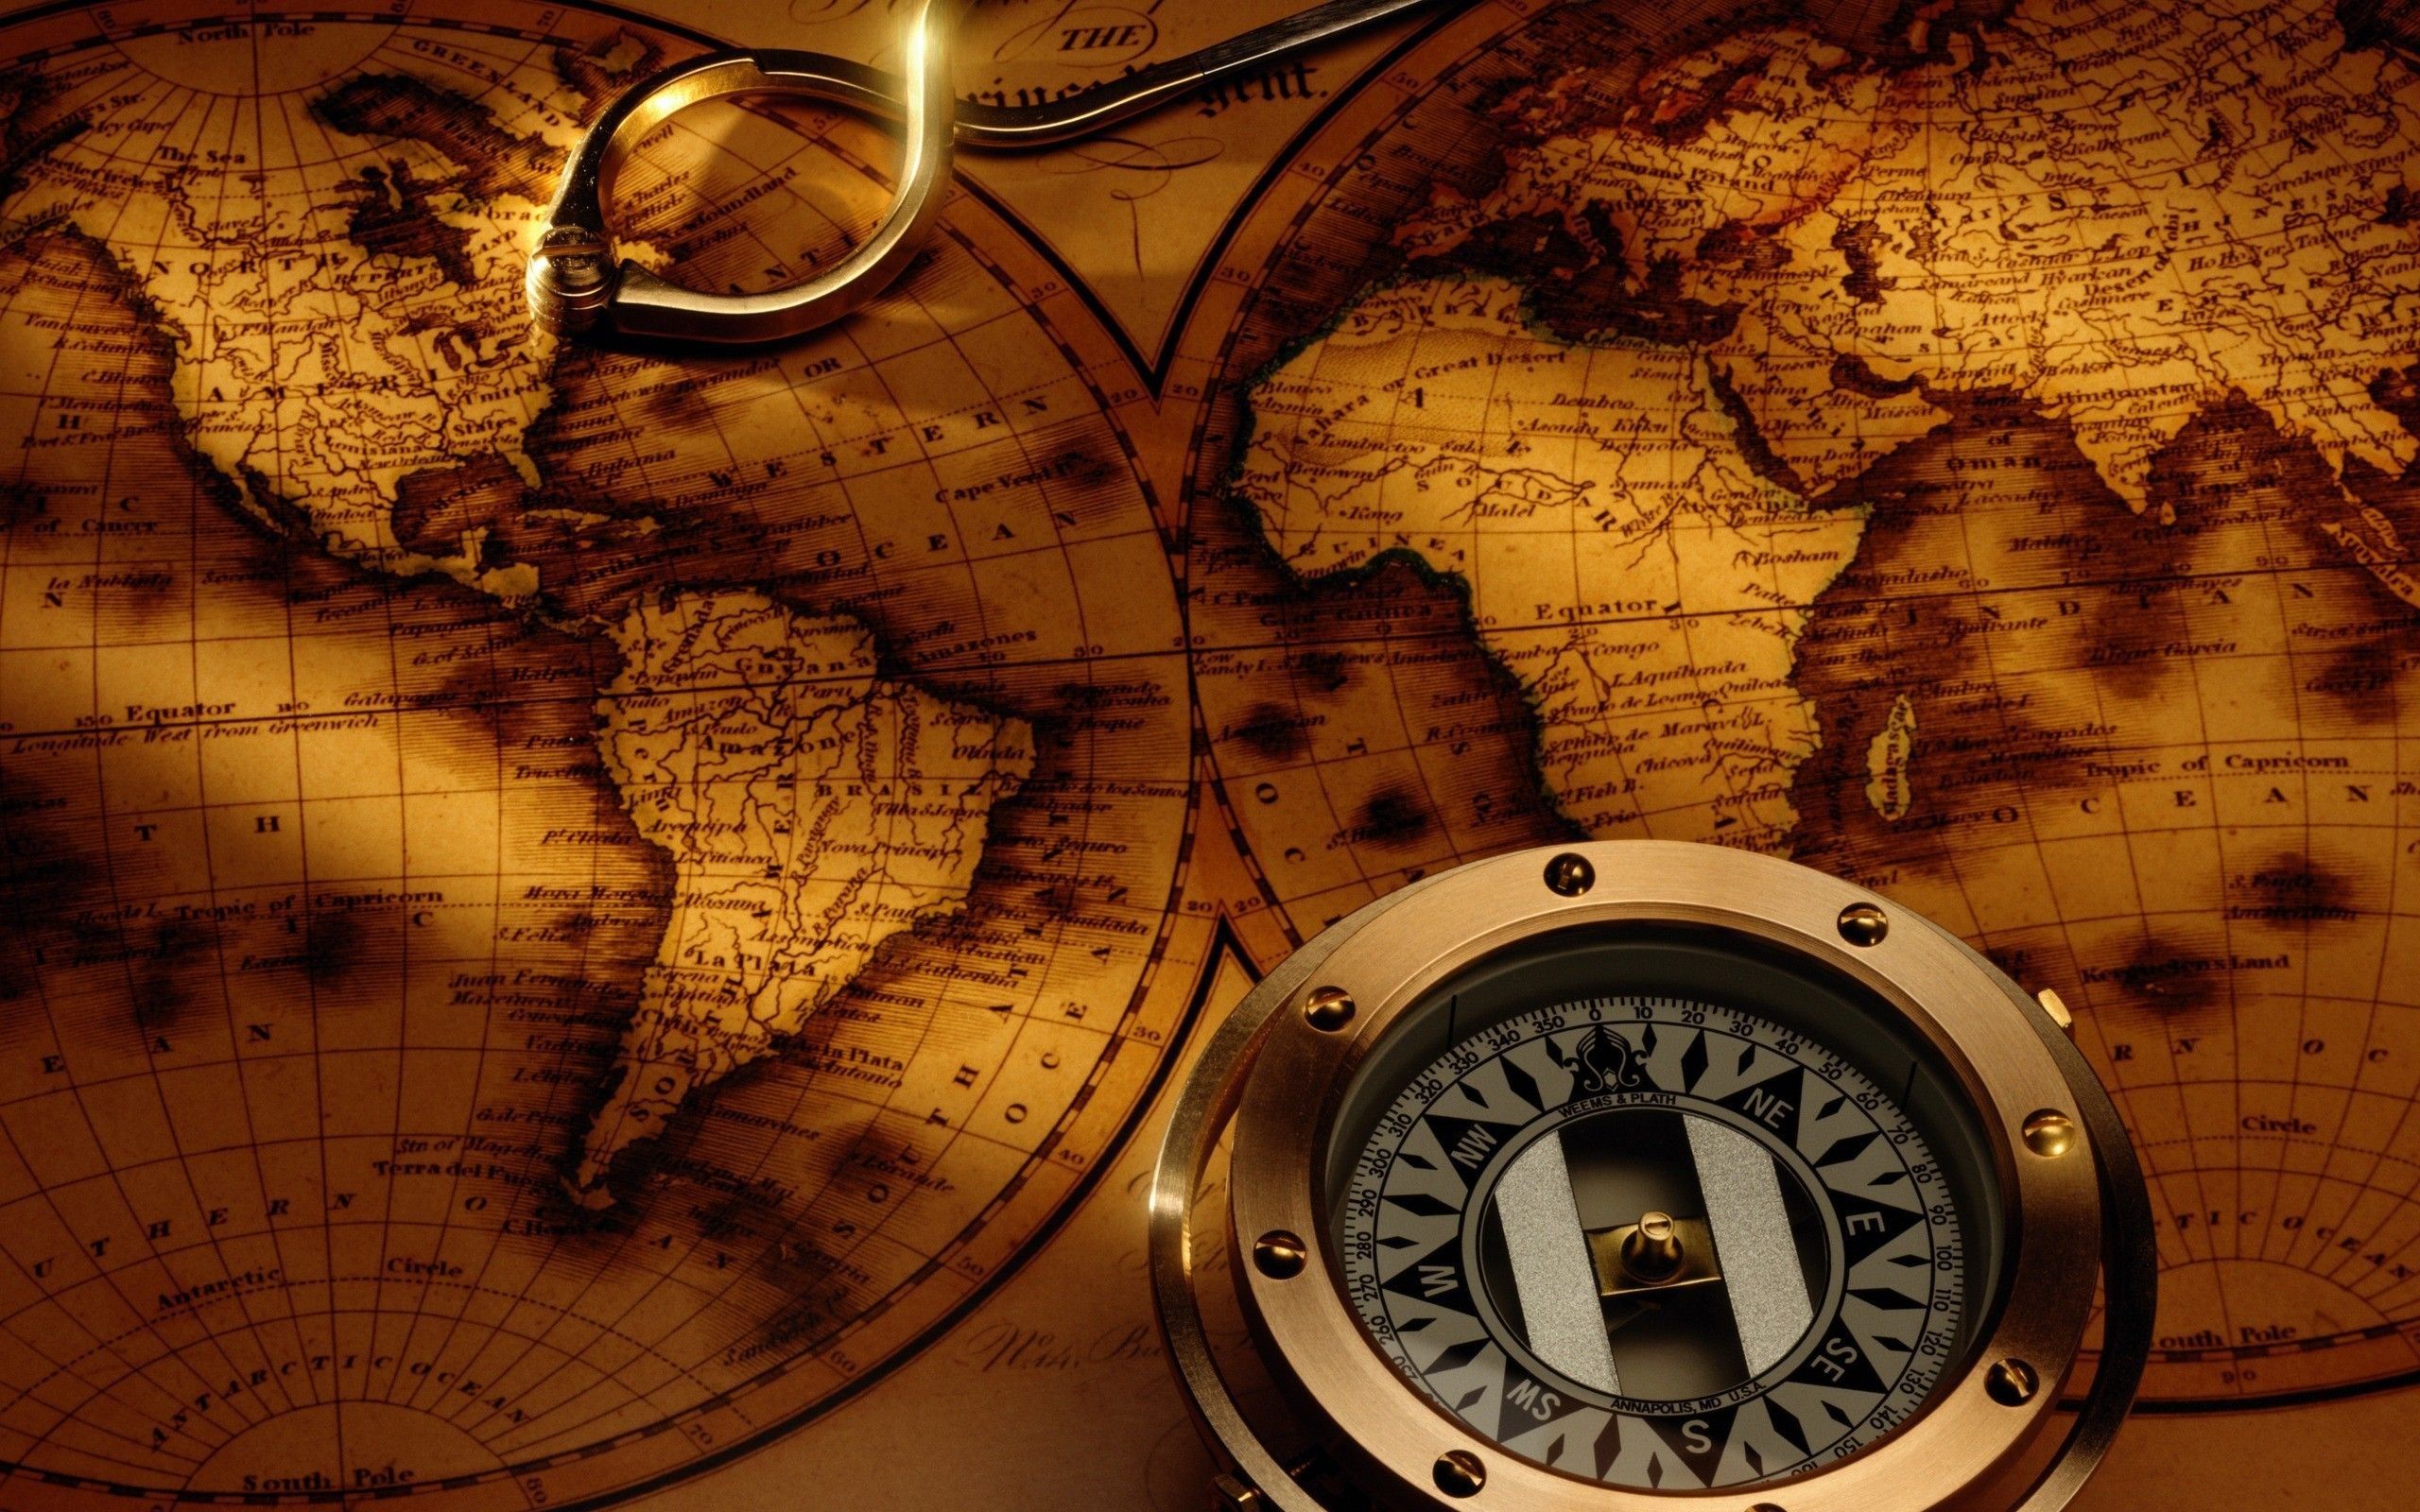 Compasses world map backgrounds time traveler pinterest compass compasses world map backgrounds gumiabroncs Image collections